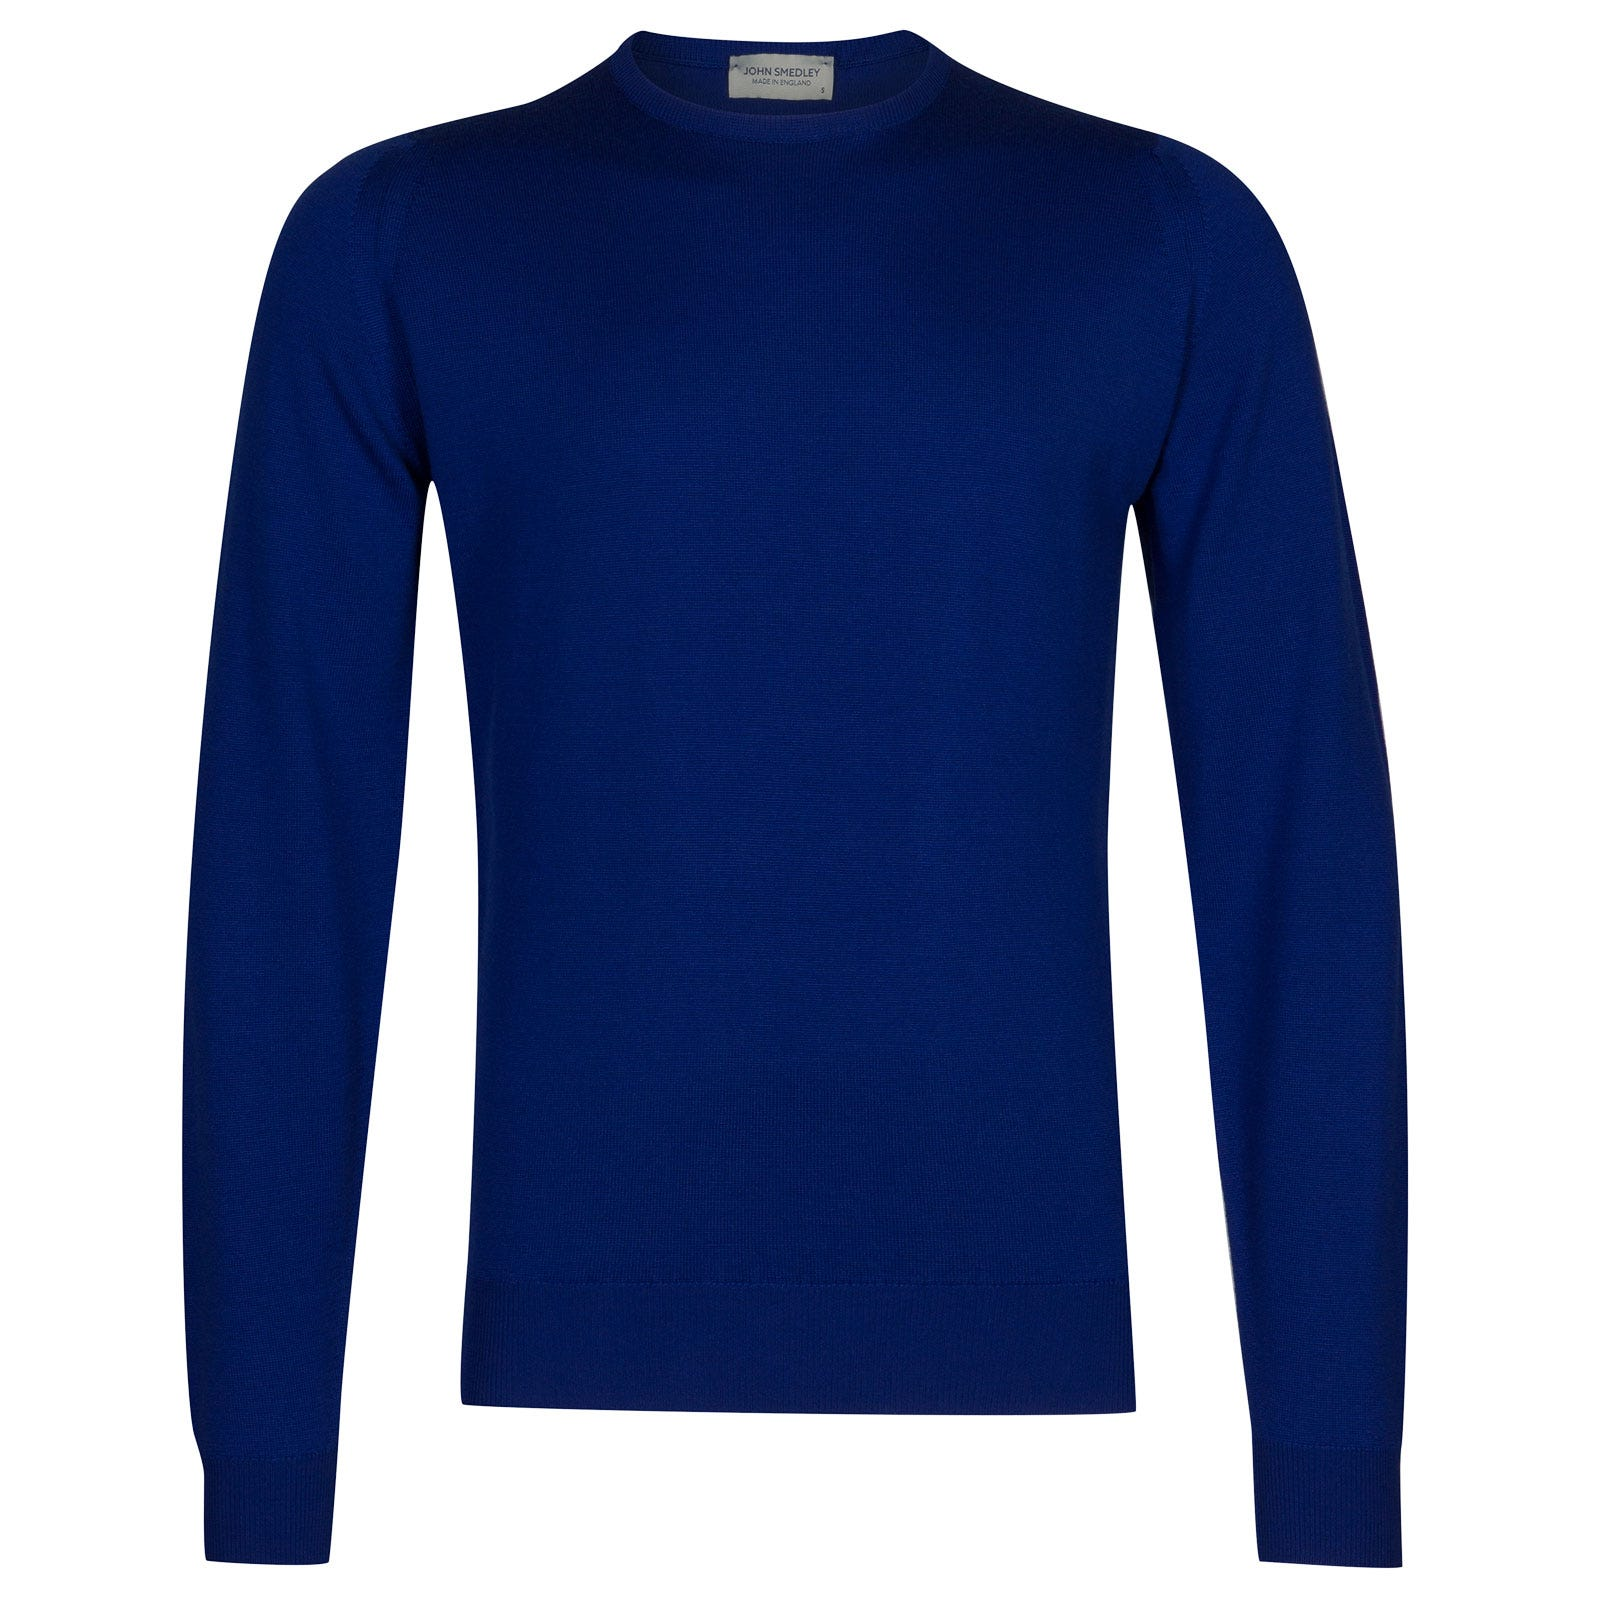 John Smedley farhill Merino Wool Pullover in Coniston Blue-XXL